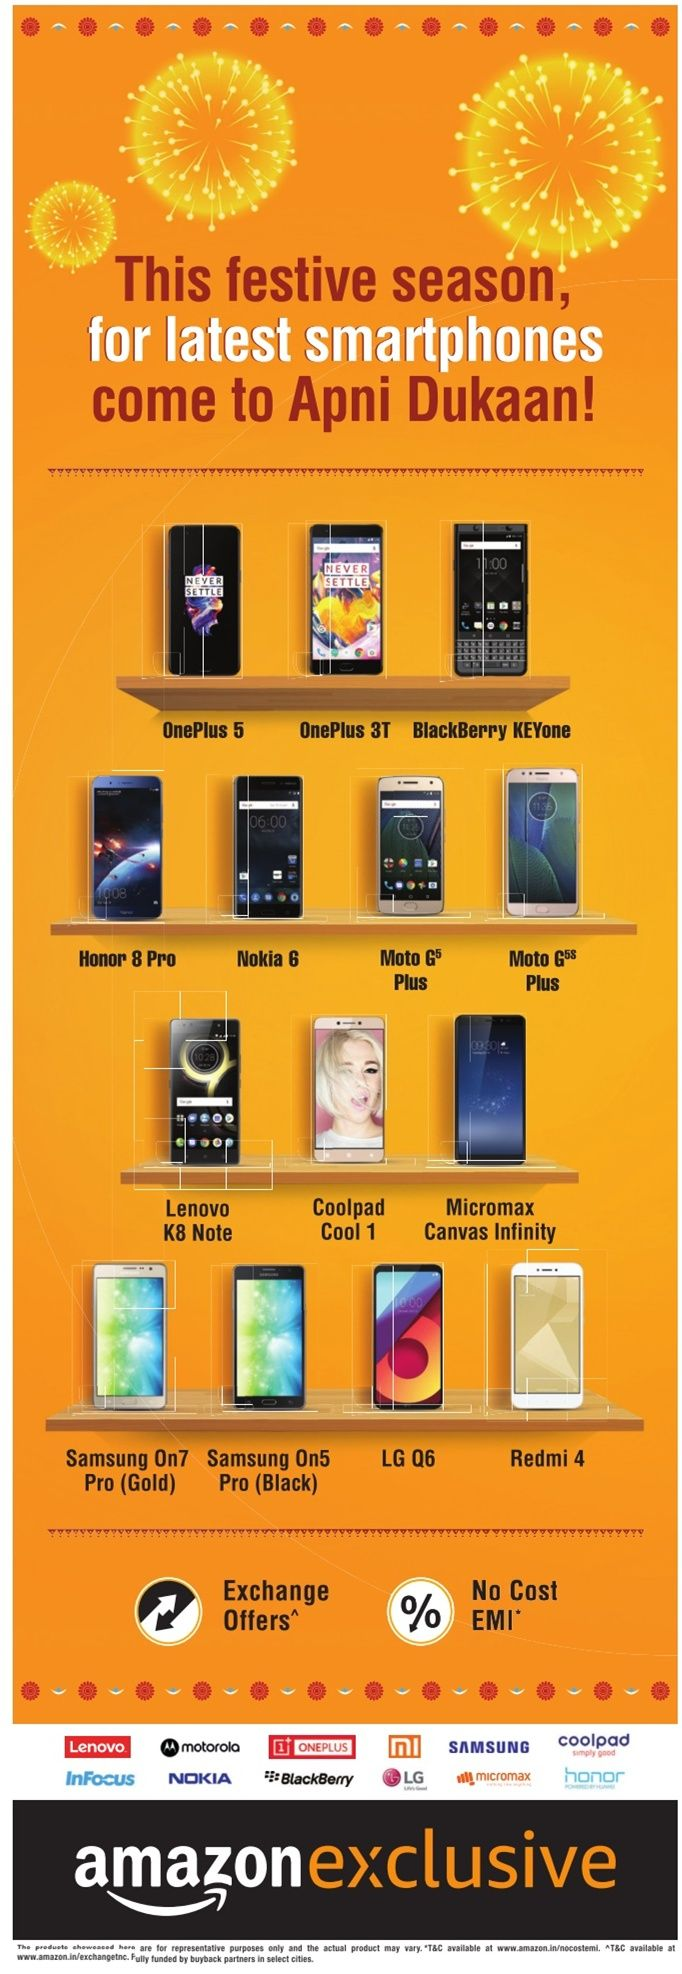 amazon-exclusive-this-festive-season-for-latest-smartphones-ad-times-of-india-delhi-03-09-2017